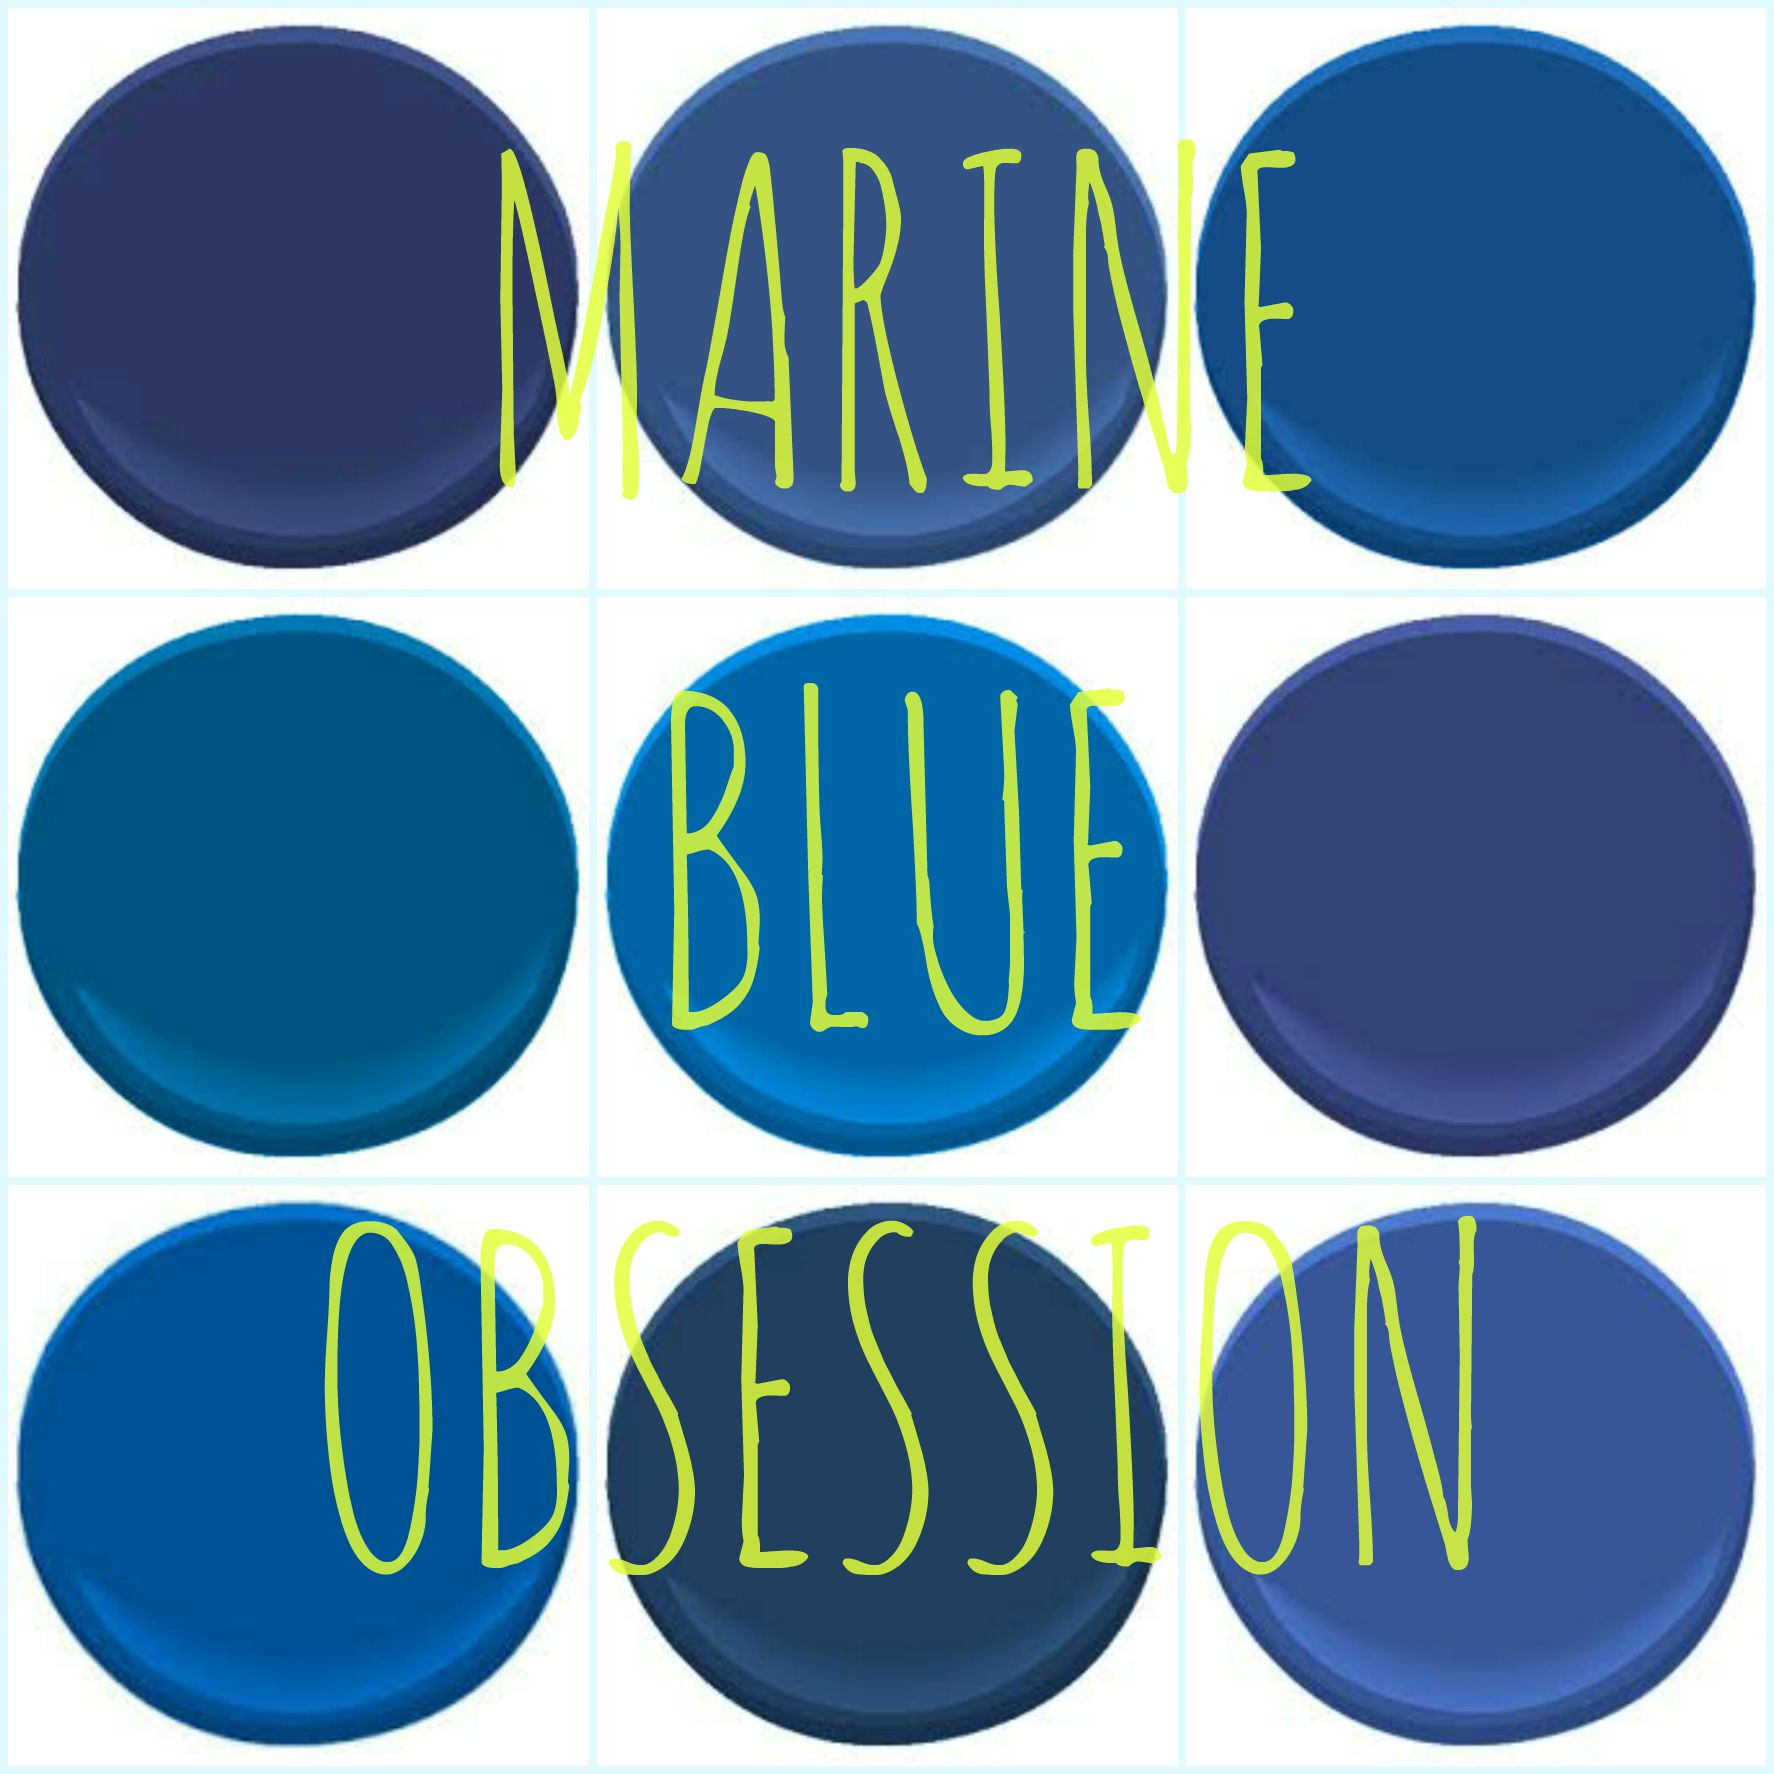 color obsession marine blue